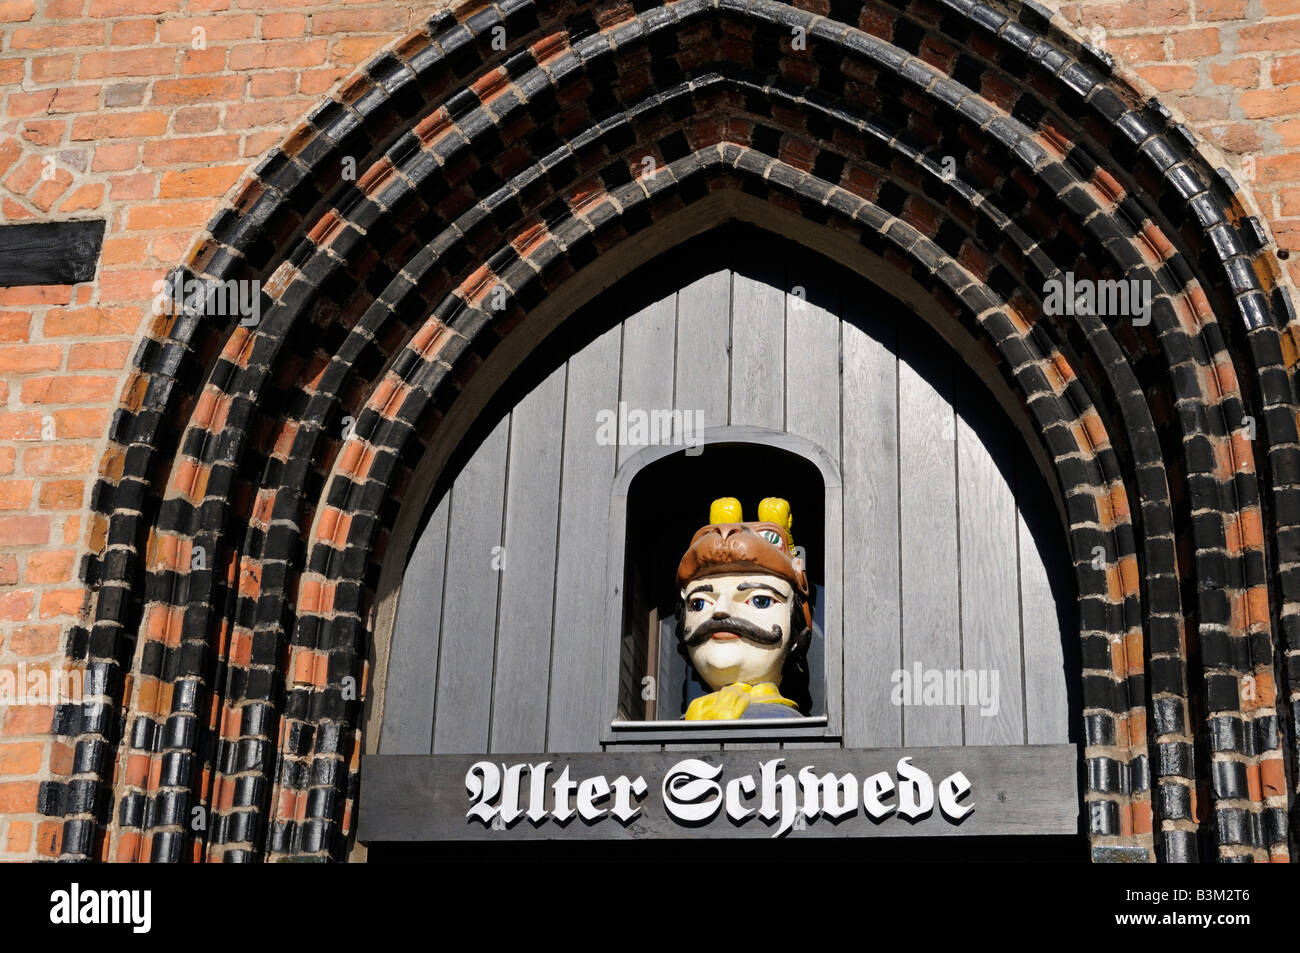 Portal eines der ältesten Häuser in Wismar Deutschland Portal one of the oldest houses in Wismar Germany - Stock Image